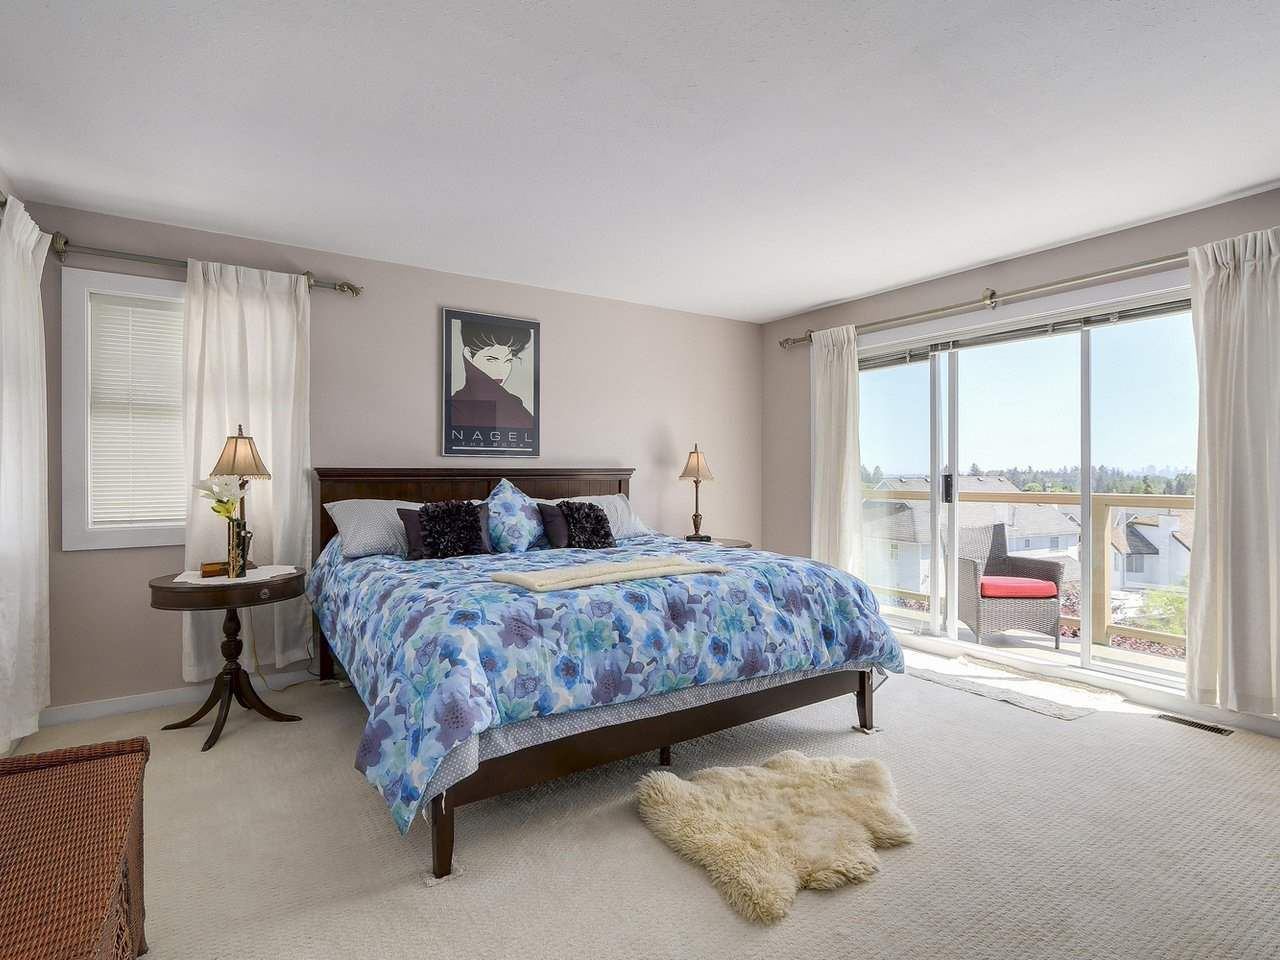 Photo 14: Photos: 737 East 29th Street, North Vancouver